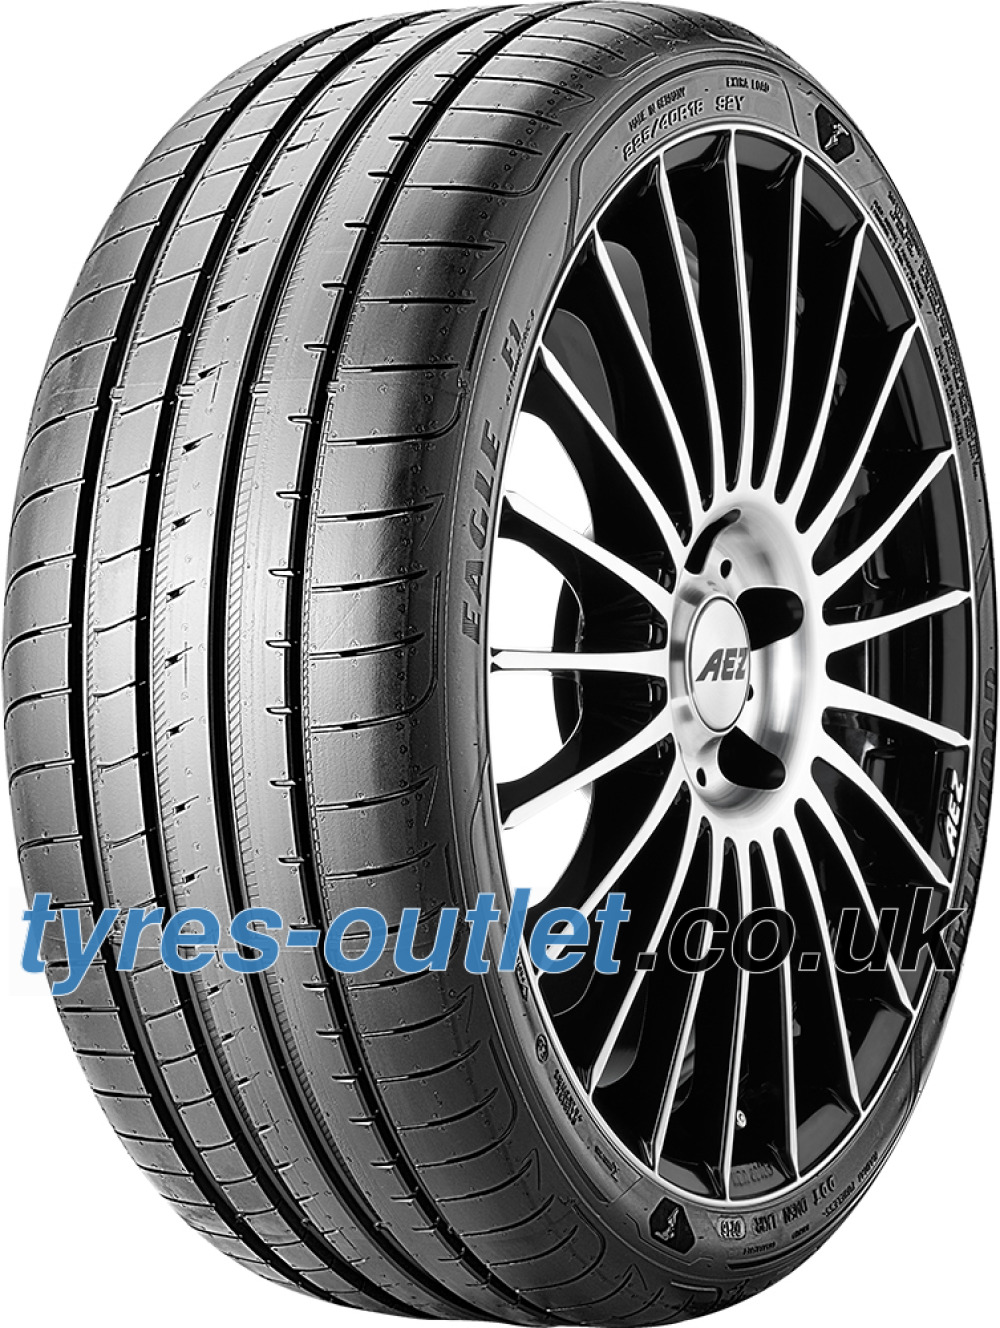 Goodyear Eagle F1 Asymmetric 3 ( 225/55 R17 97Y with rim protection (MFS) )